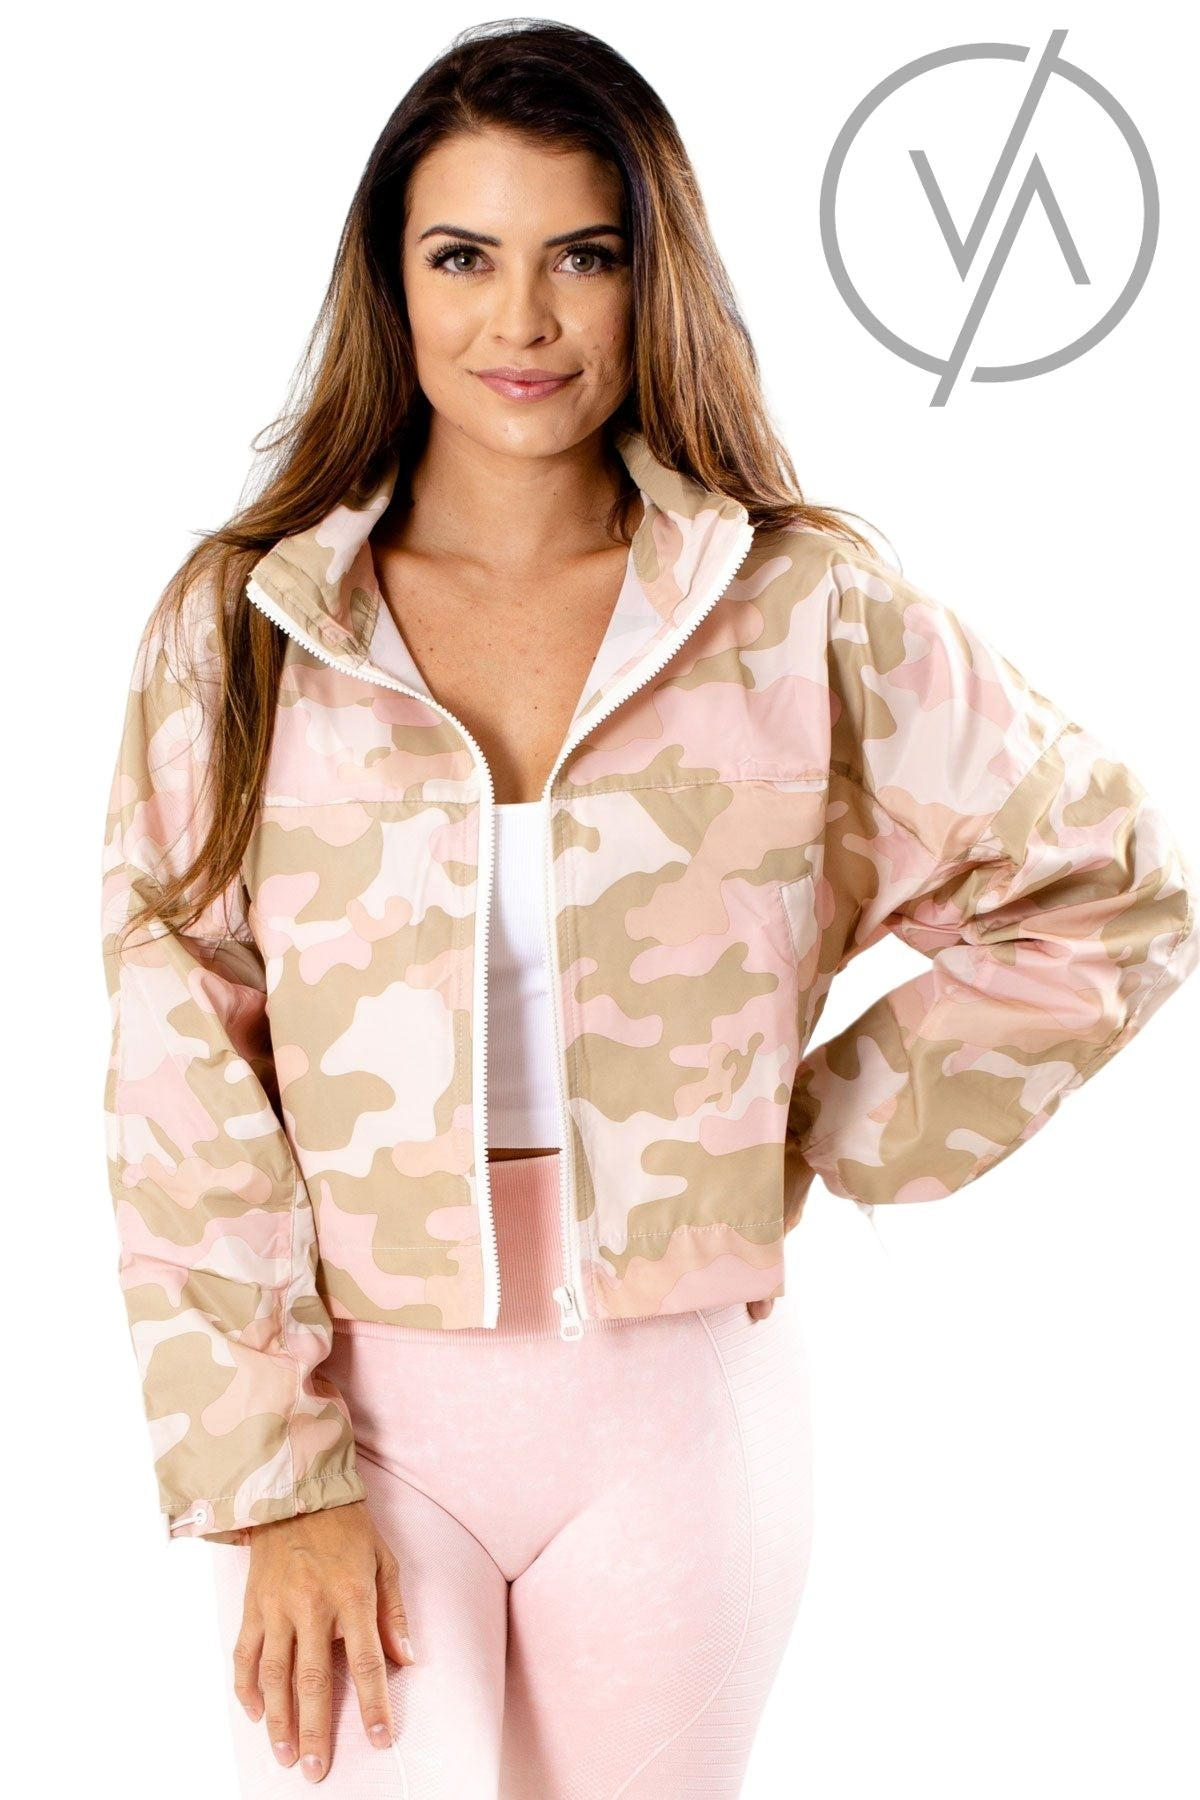 Pink Camo Printed Athletic Windbreakers for Women